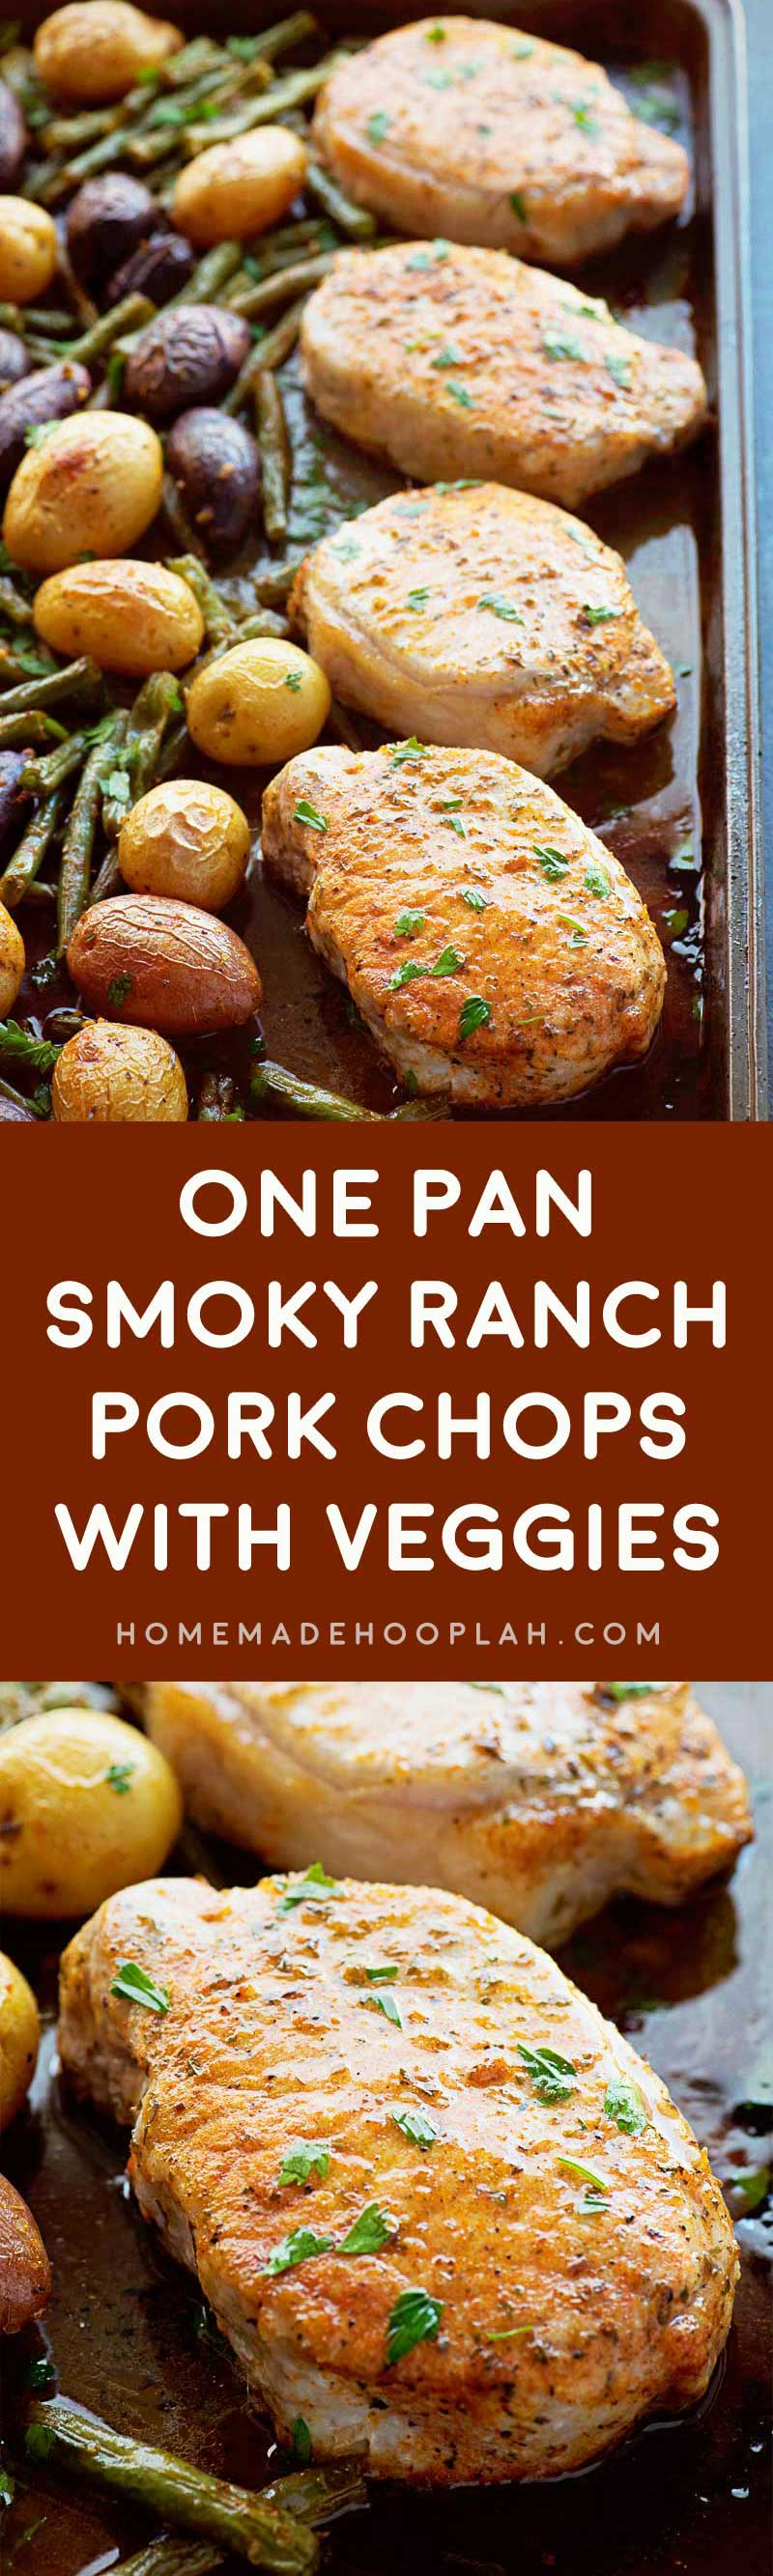 One Pan Smoky Ranch Pork Chops with Veggies! Savory ranch pork chops with a touch of smoked paprika baked on one baking sheet with assorted baby potatoes and green beans.   HomemadeHooplah.com